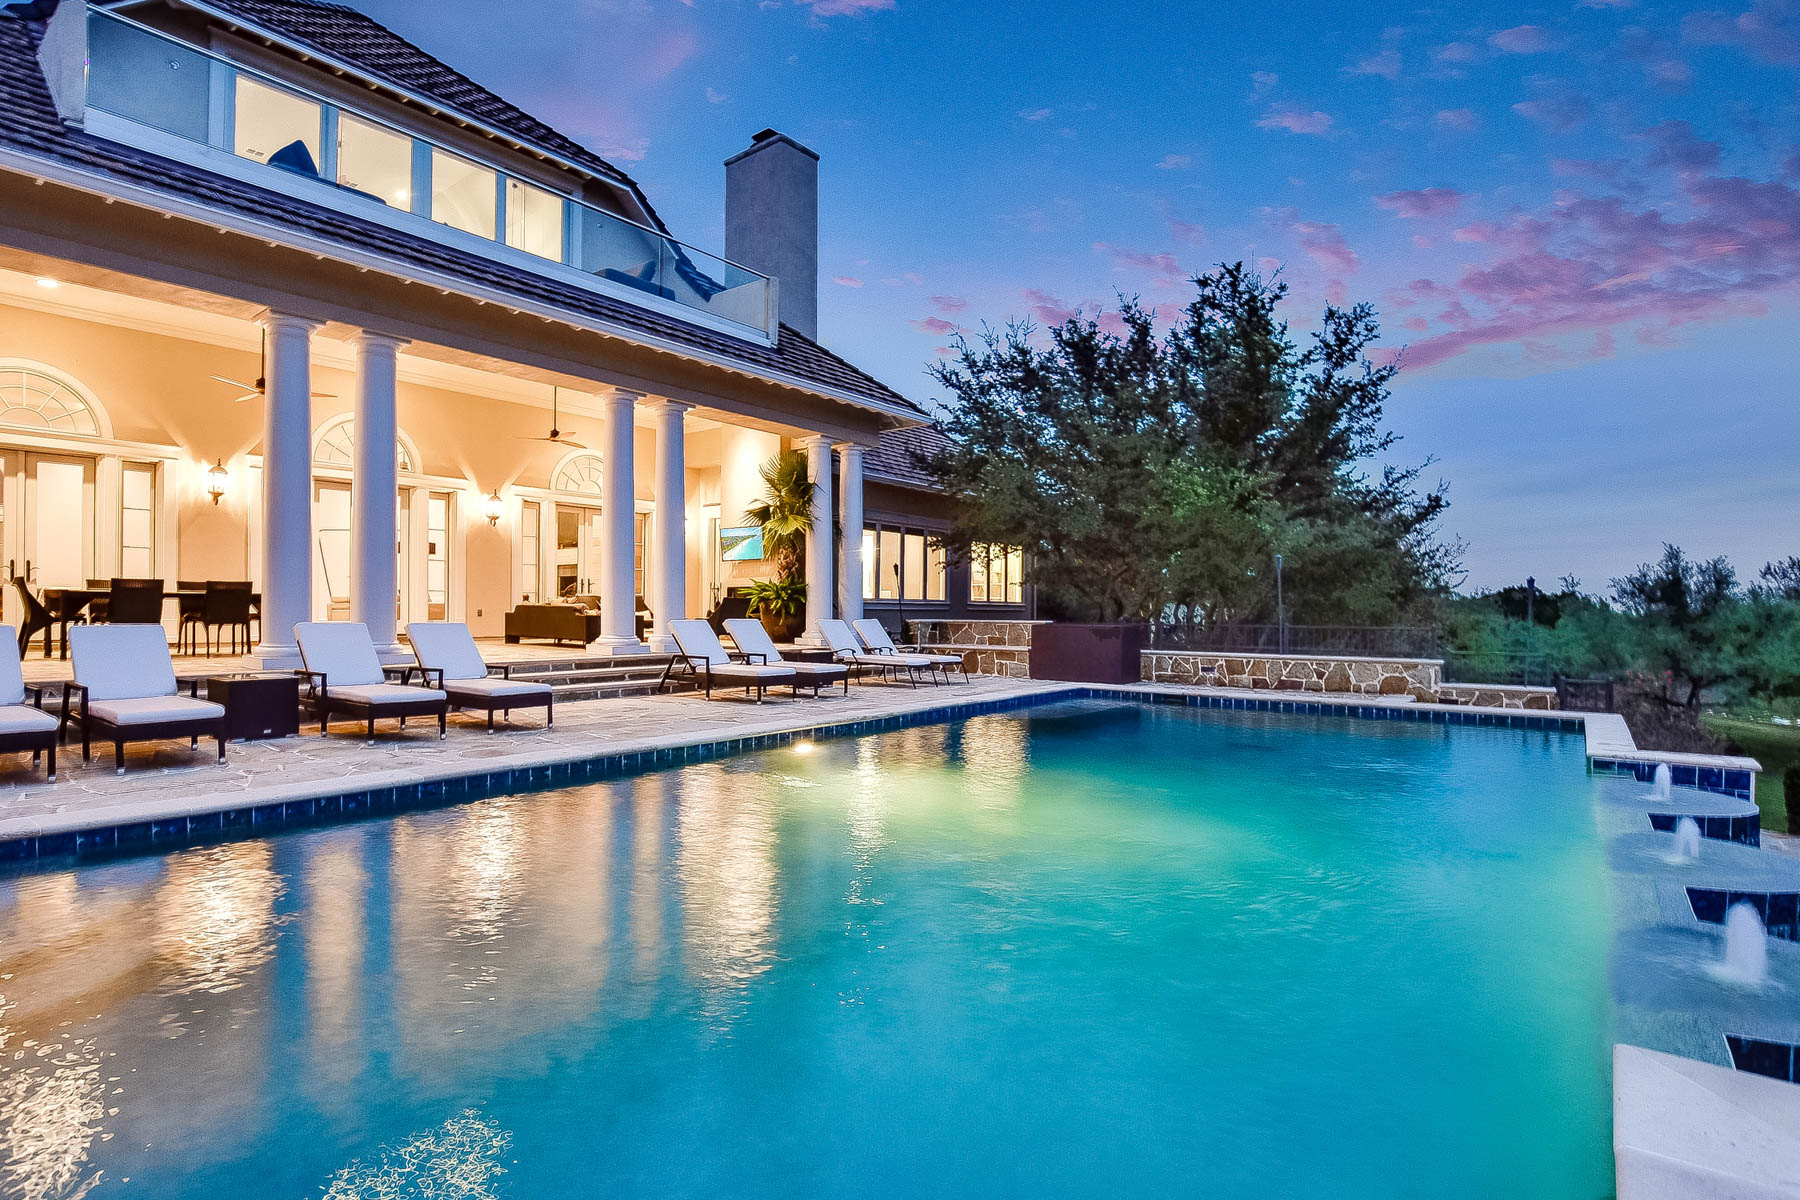 Single Family Home for Sale at Breathtaking Luxury and Uncompromising Quality 21218 Fortaleza Drive San Antonio, Texas 78255 United States